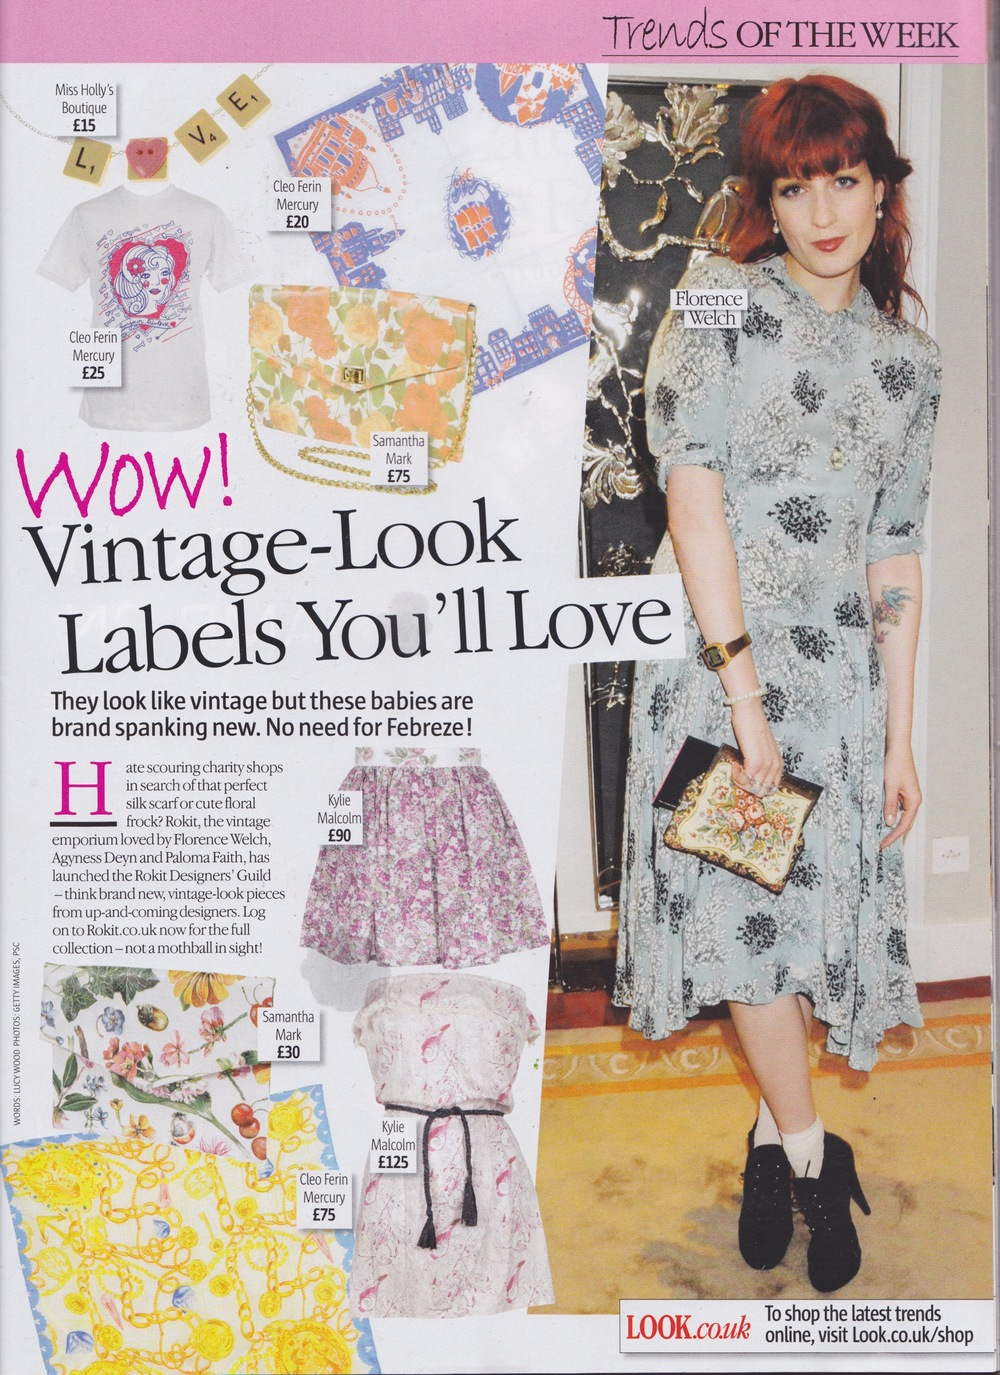 Cleo Ferin Mercury silk scarves as seen in Look Magazine